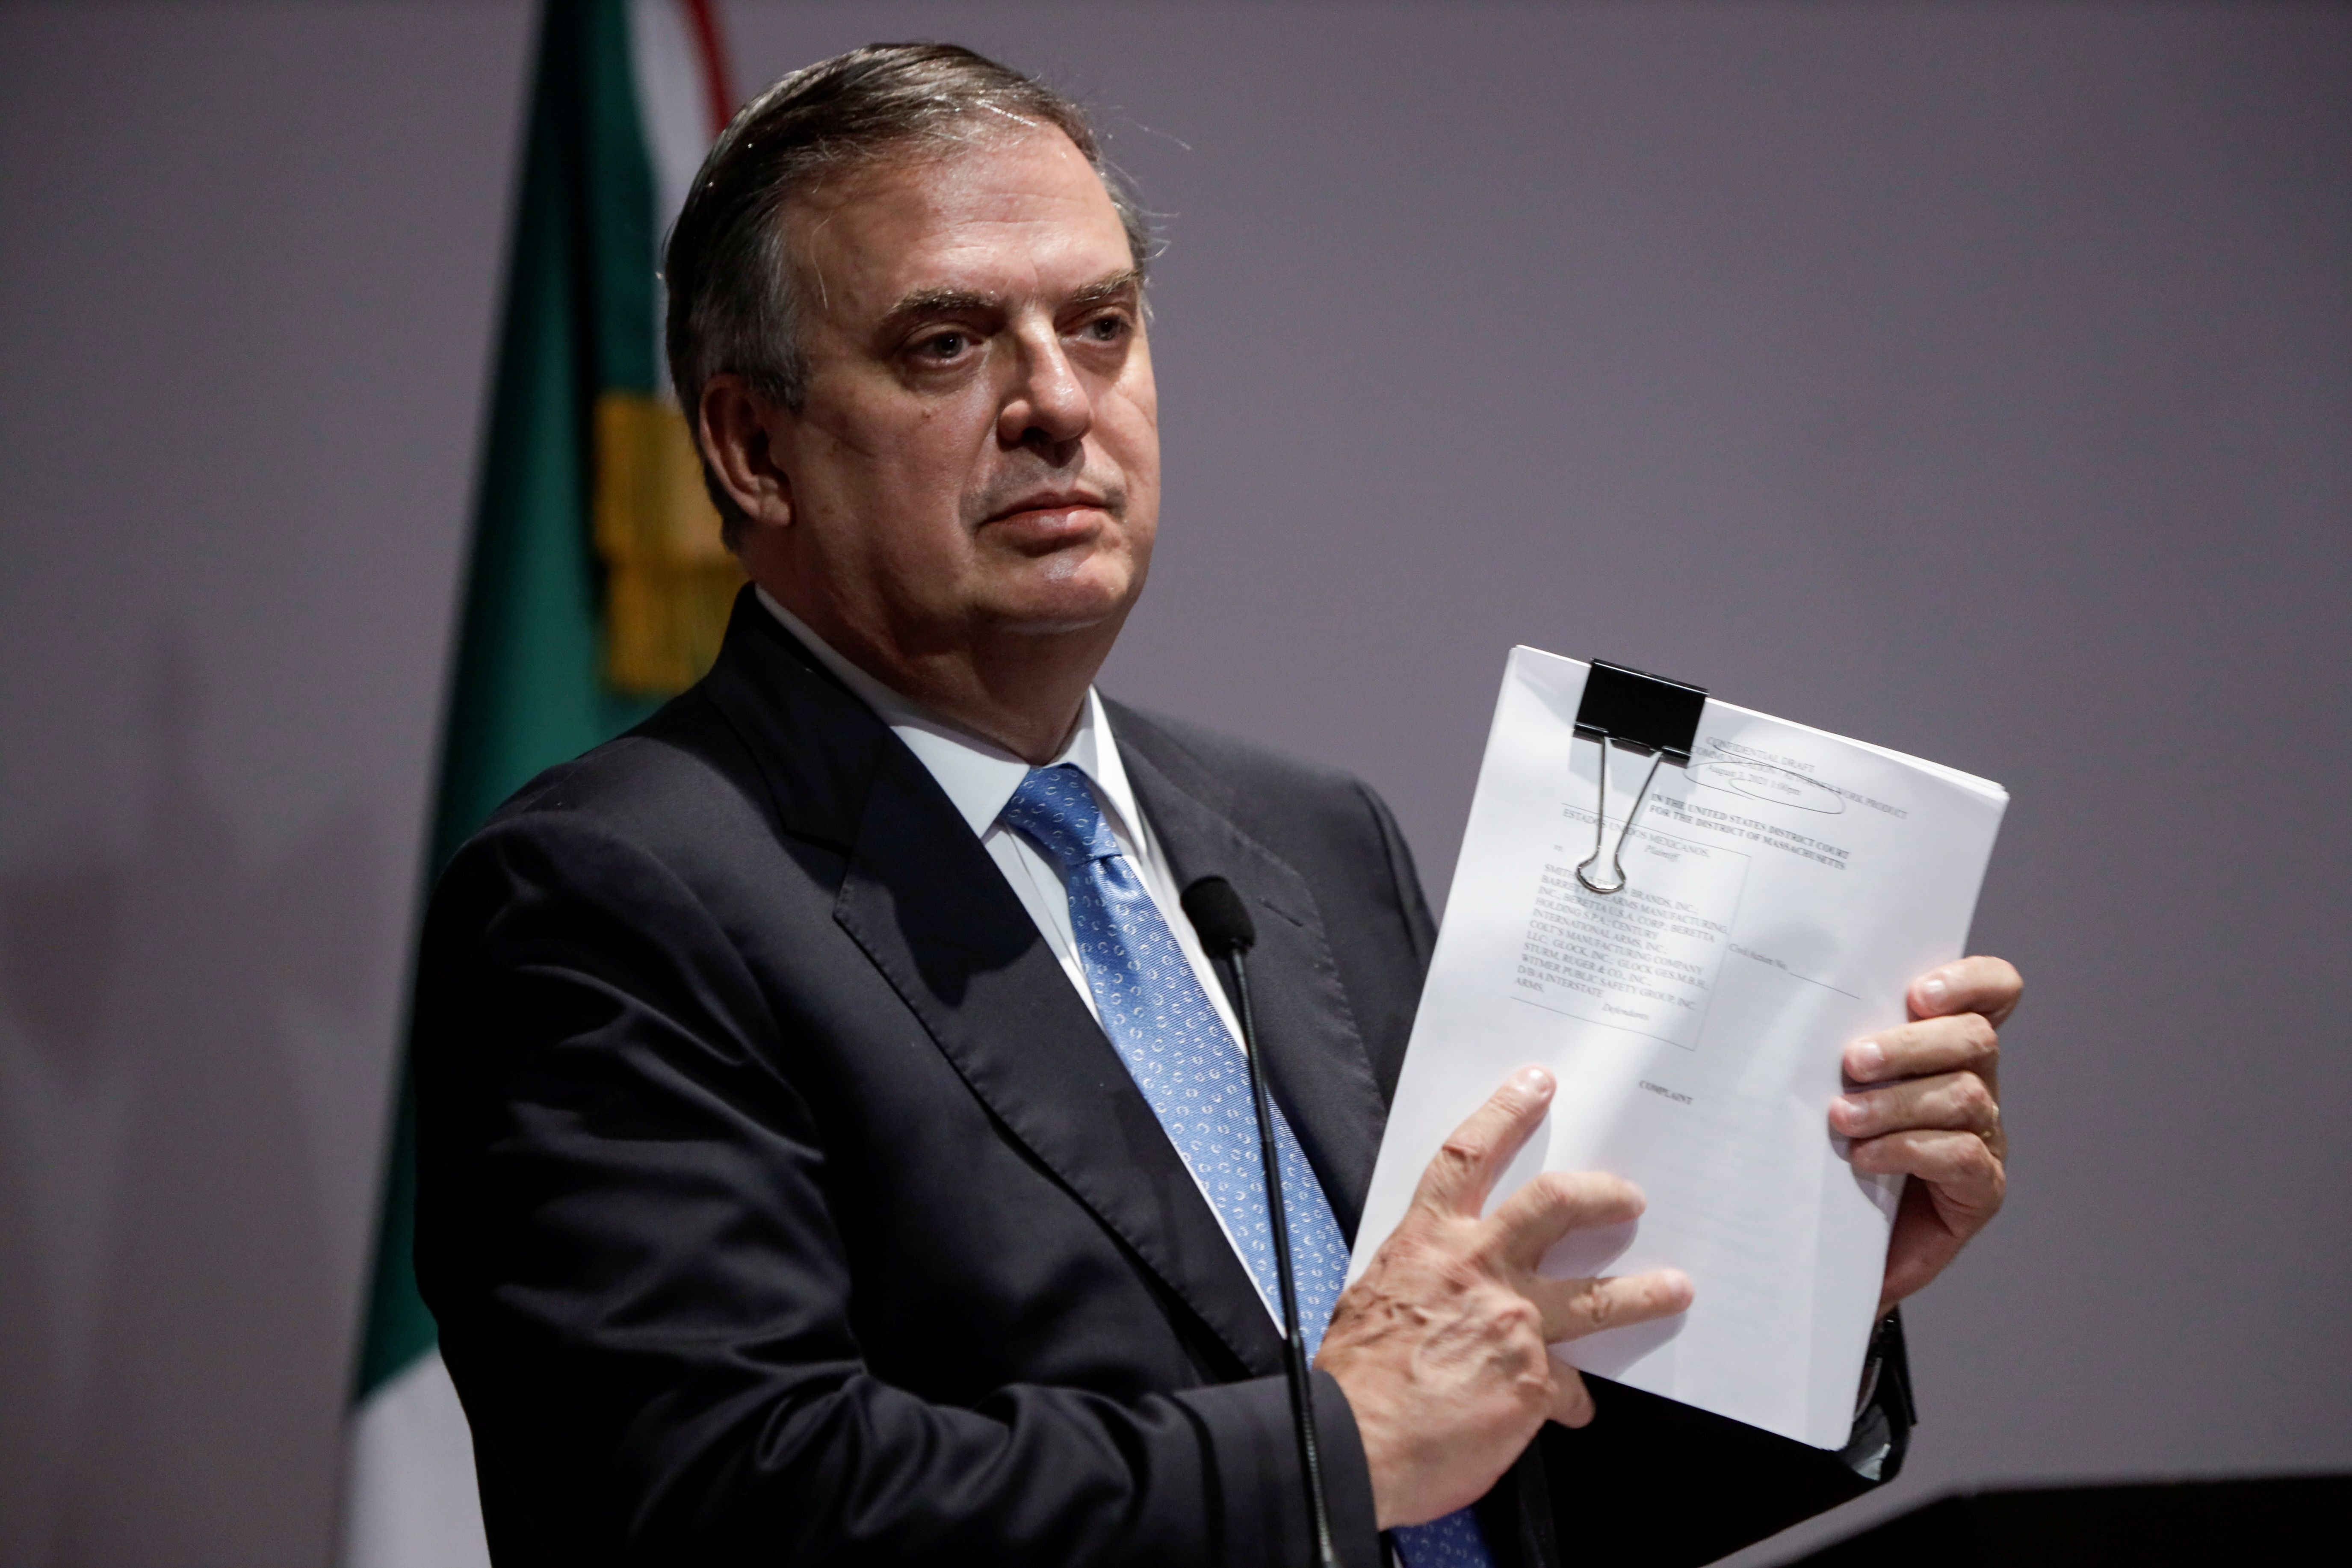 Mexican Foreign Minister Marcelo Ebrard holds documents during a news conference to announce that Mexico sued several gun makers in a U.S. federal court, accusing them of negligent business practices that generated illegal arms trafficking which led to deaths in Mexico, in Mexico City, Mexico August 4, 2021. REUTERS/Luis Cortes